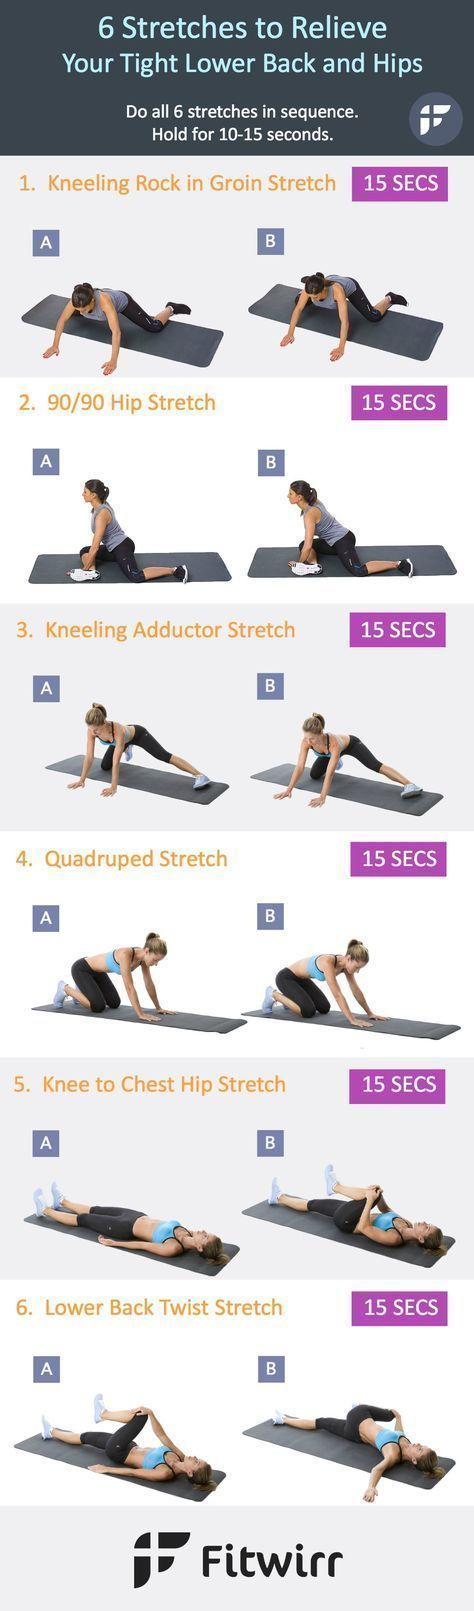 Golf Stretching Exercises Best Exercises To Improve Golf